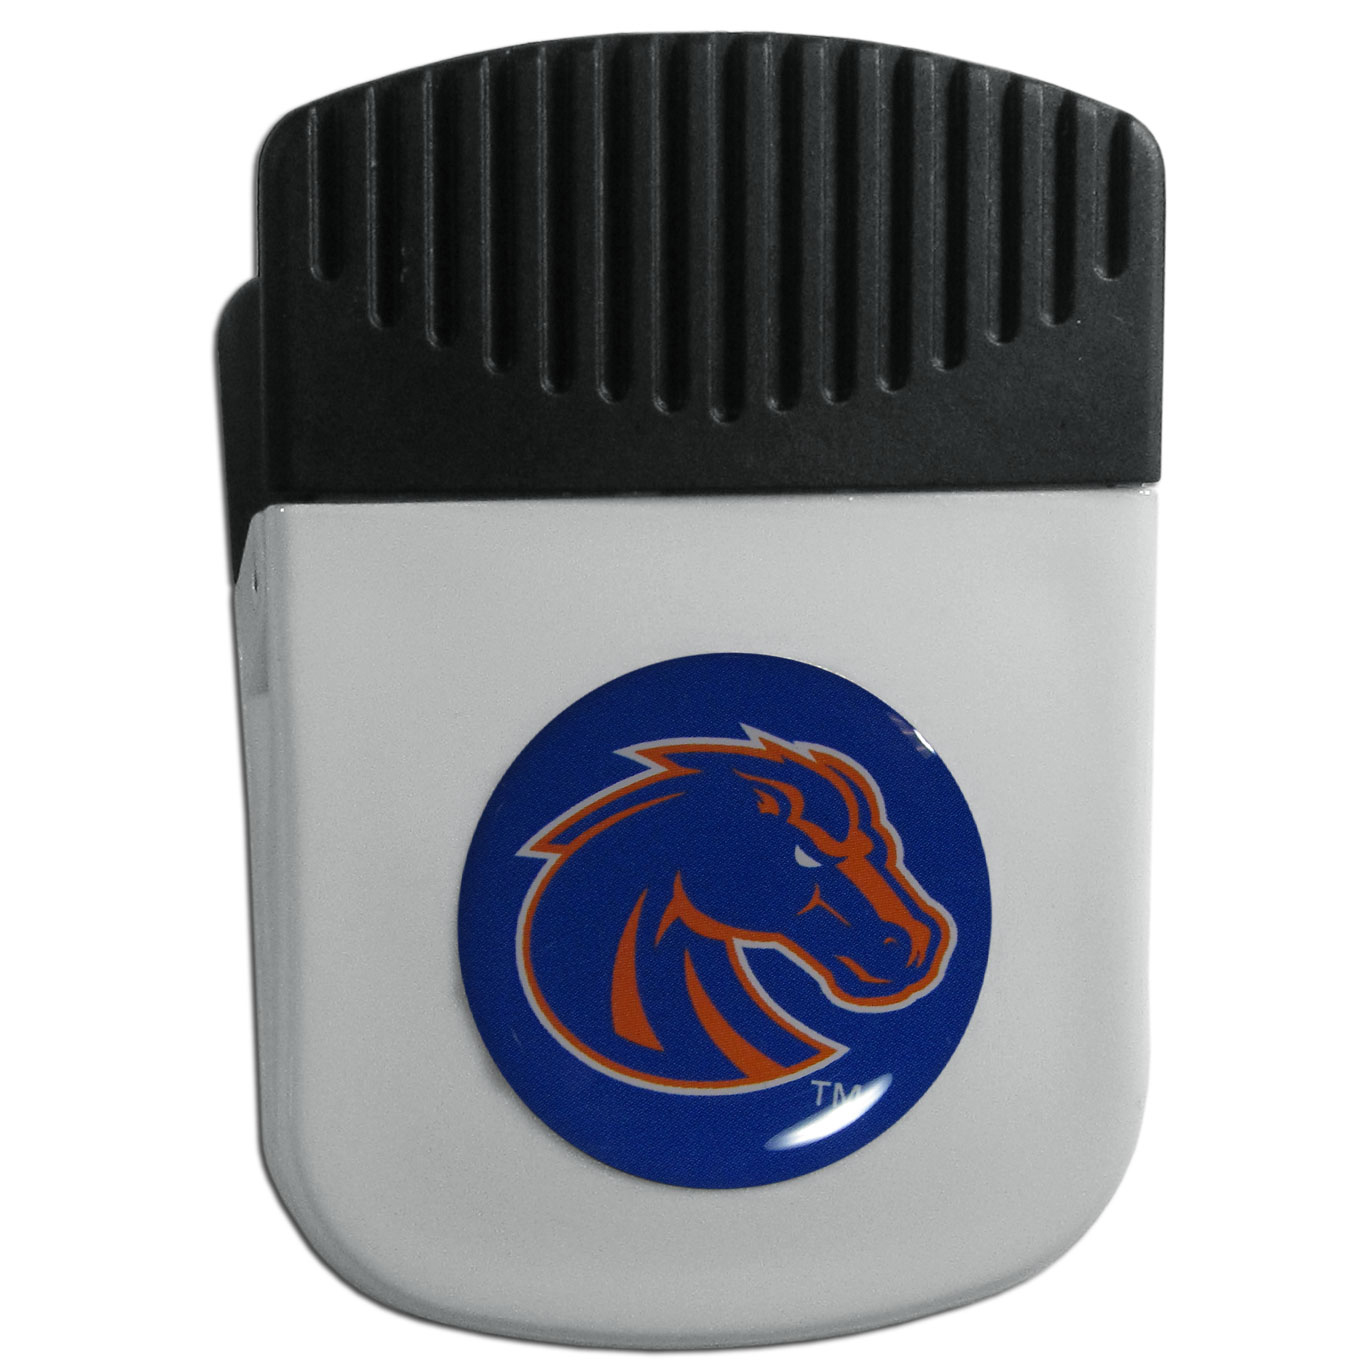 Boise St. Broncos Chip Clip Magnet - Use this attractive clip magnet to hold memos, photos or appointment cards on the fridge or take it down keep use it to clip bags shut. The magnet features a domed Boise St. Broncos logo.